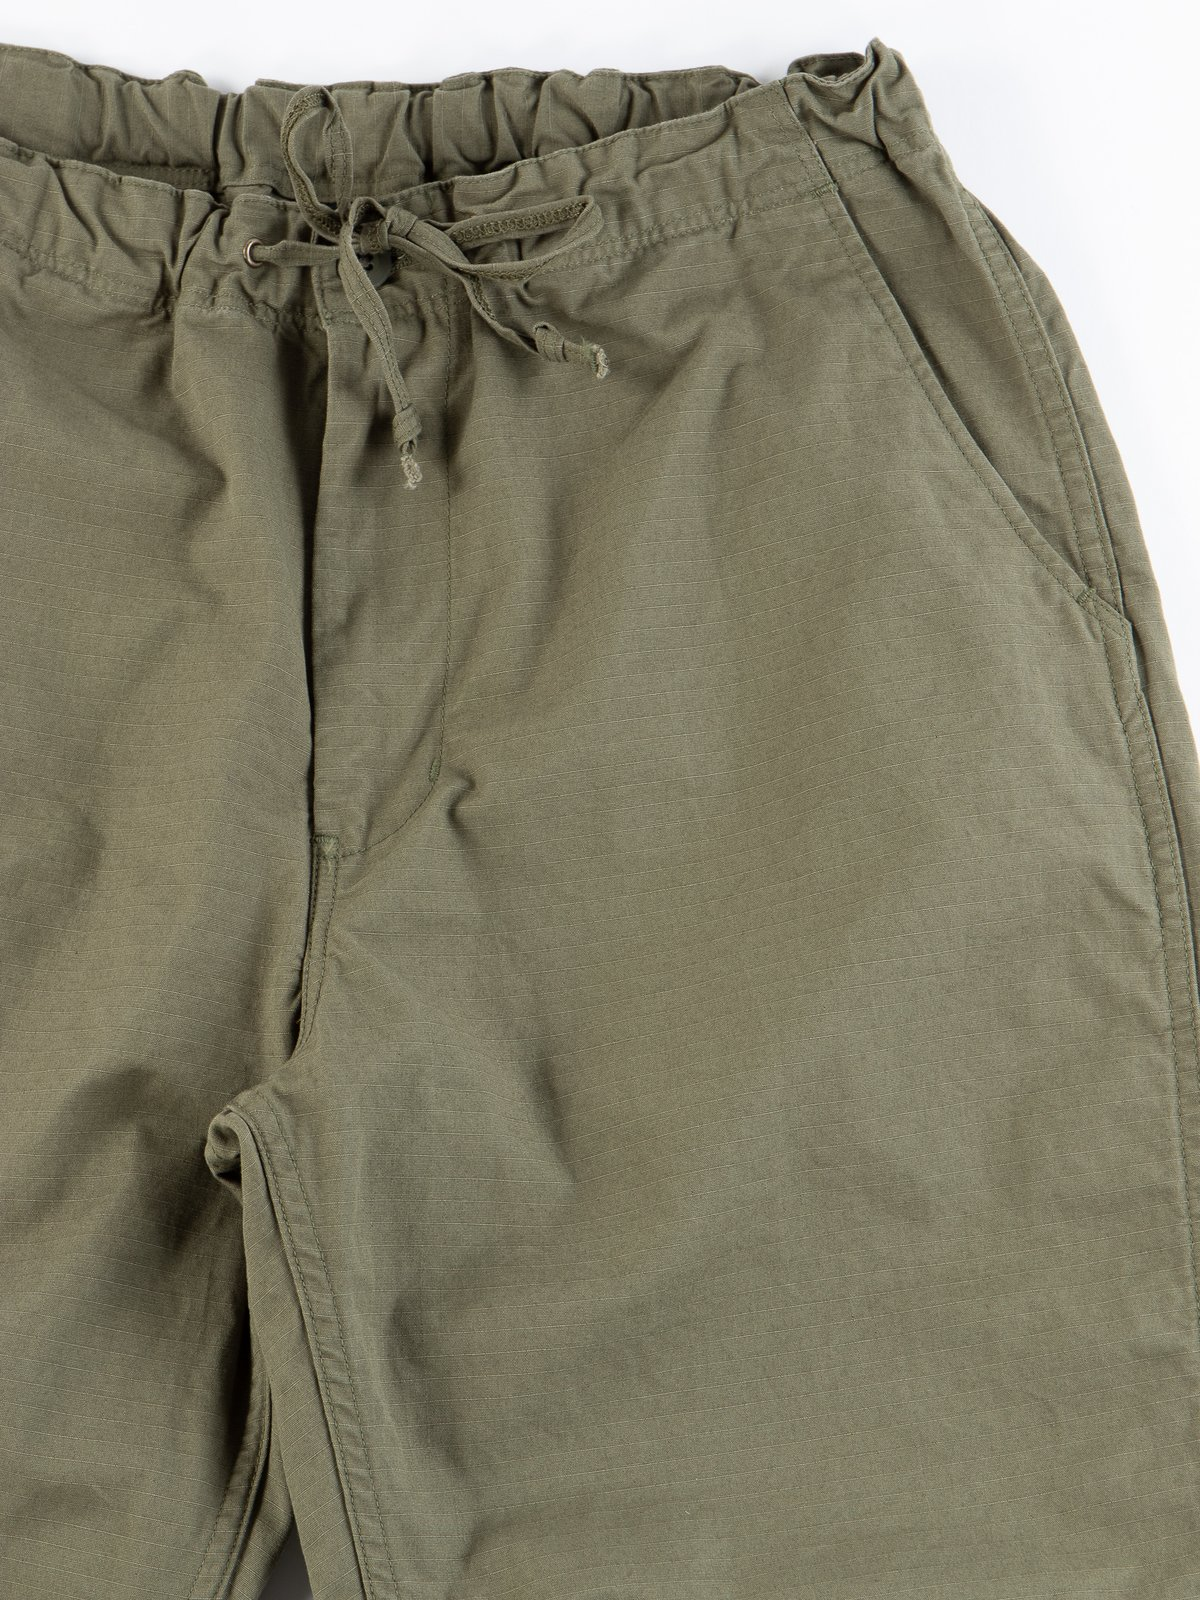 Army Green Ripstop New Yorker Pant - Image 2